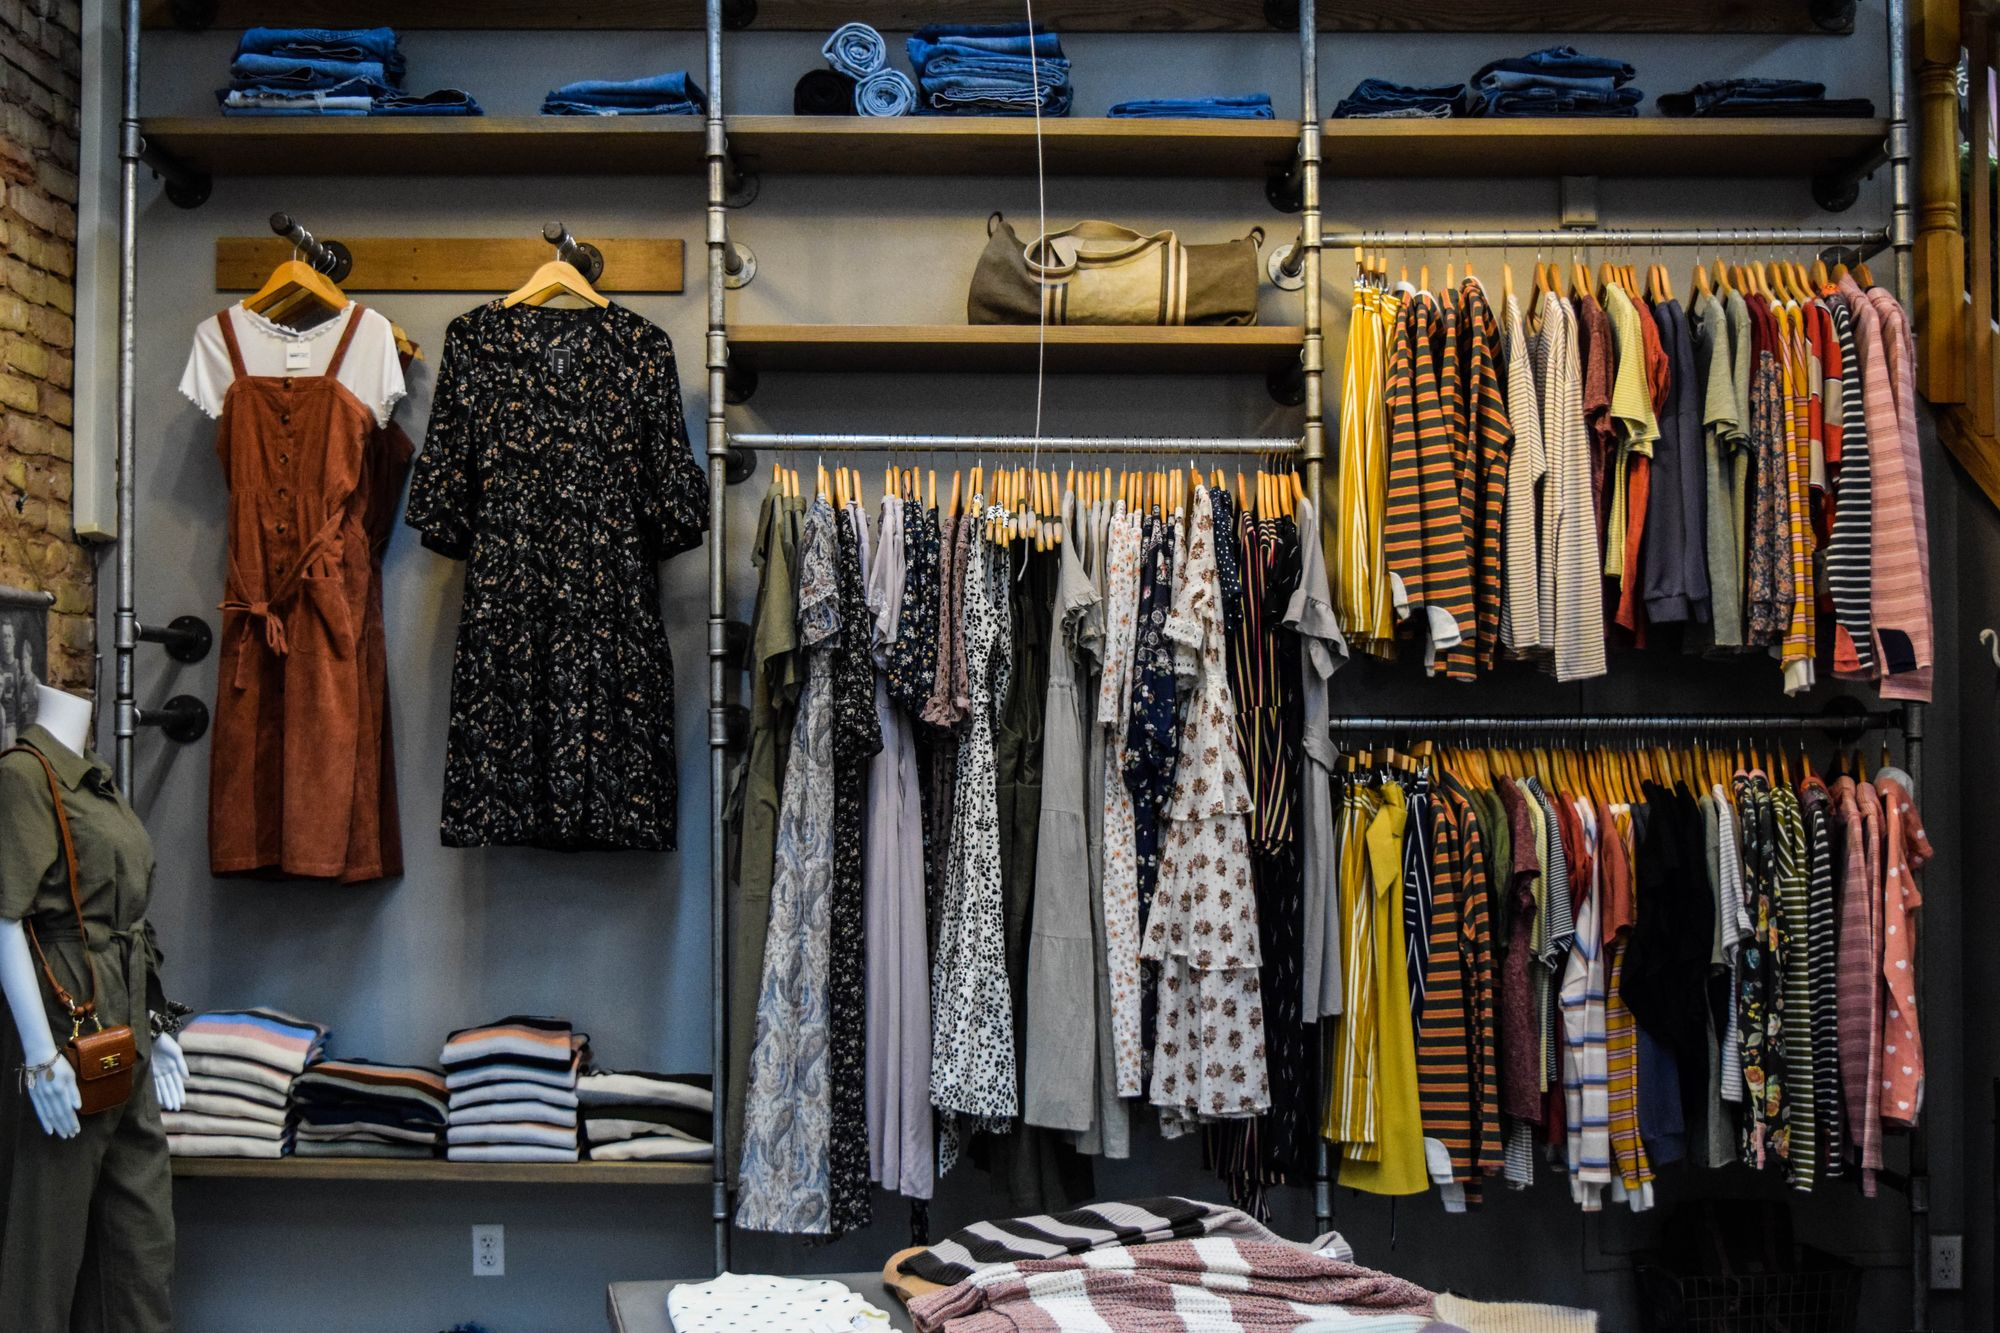 How to Start a Clothing Business?